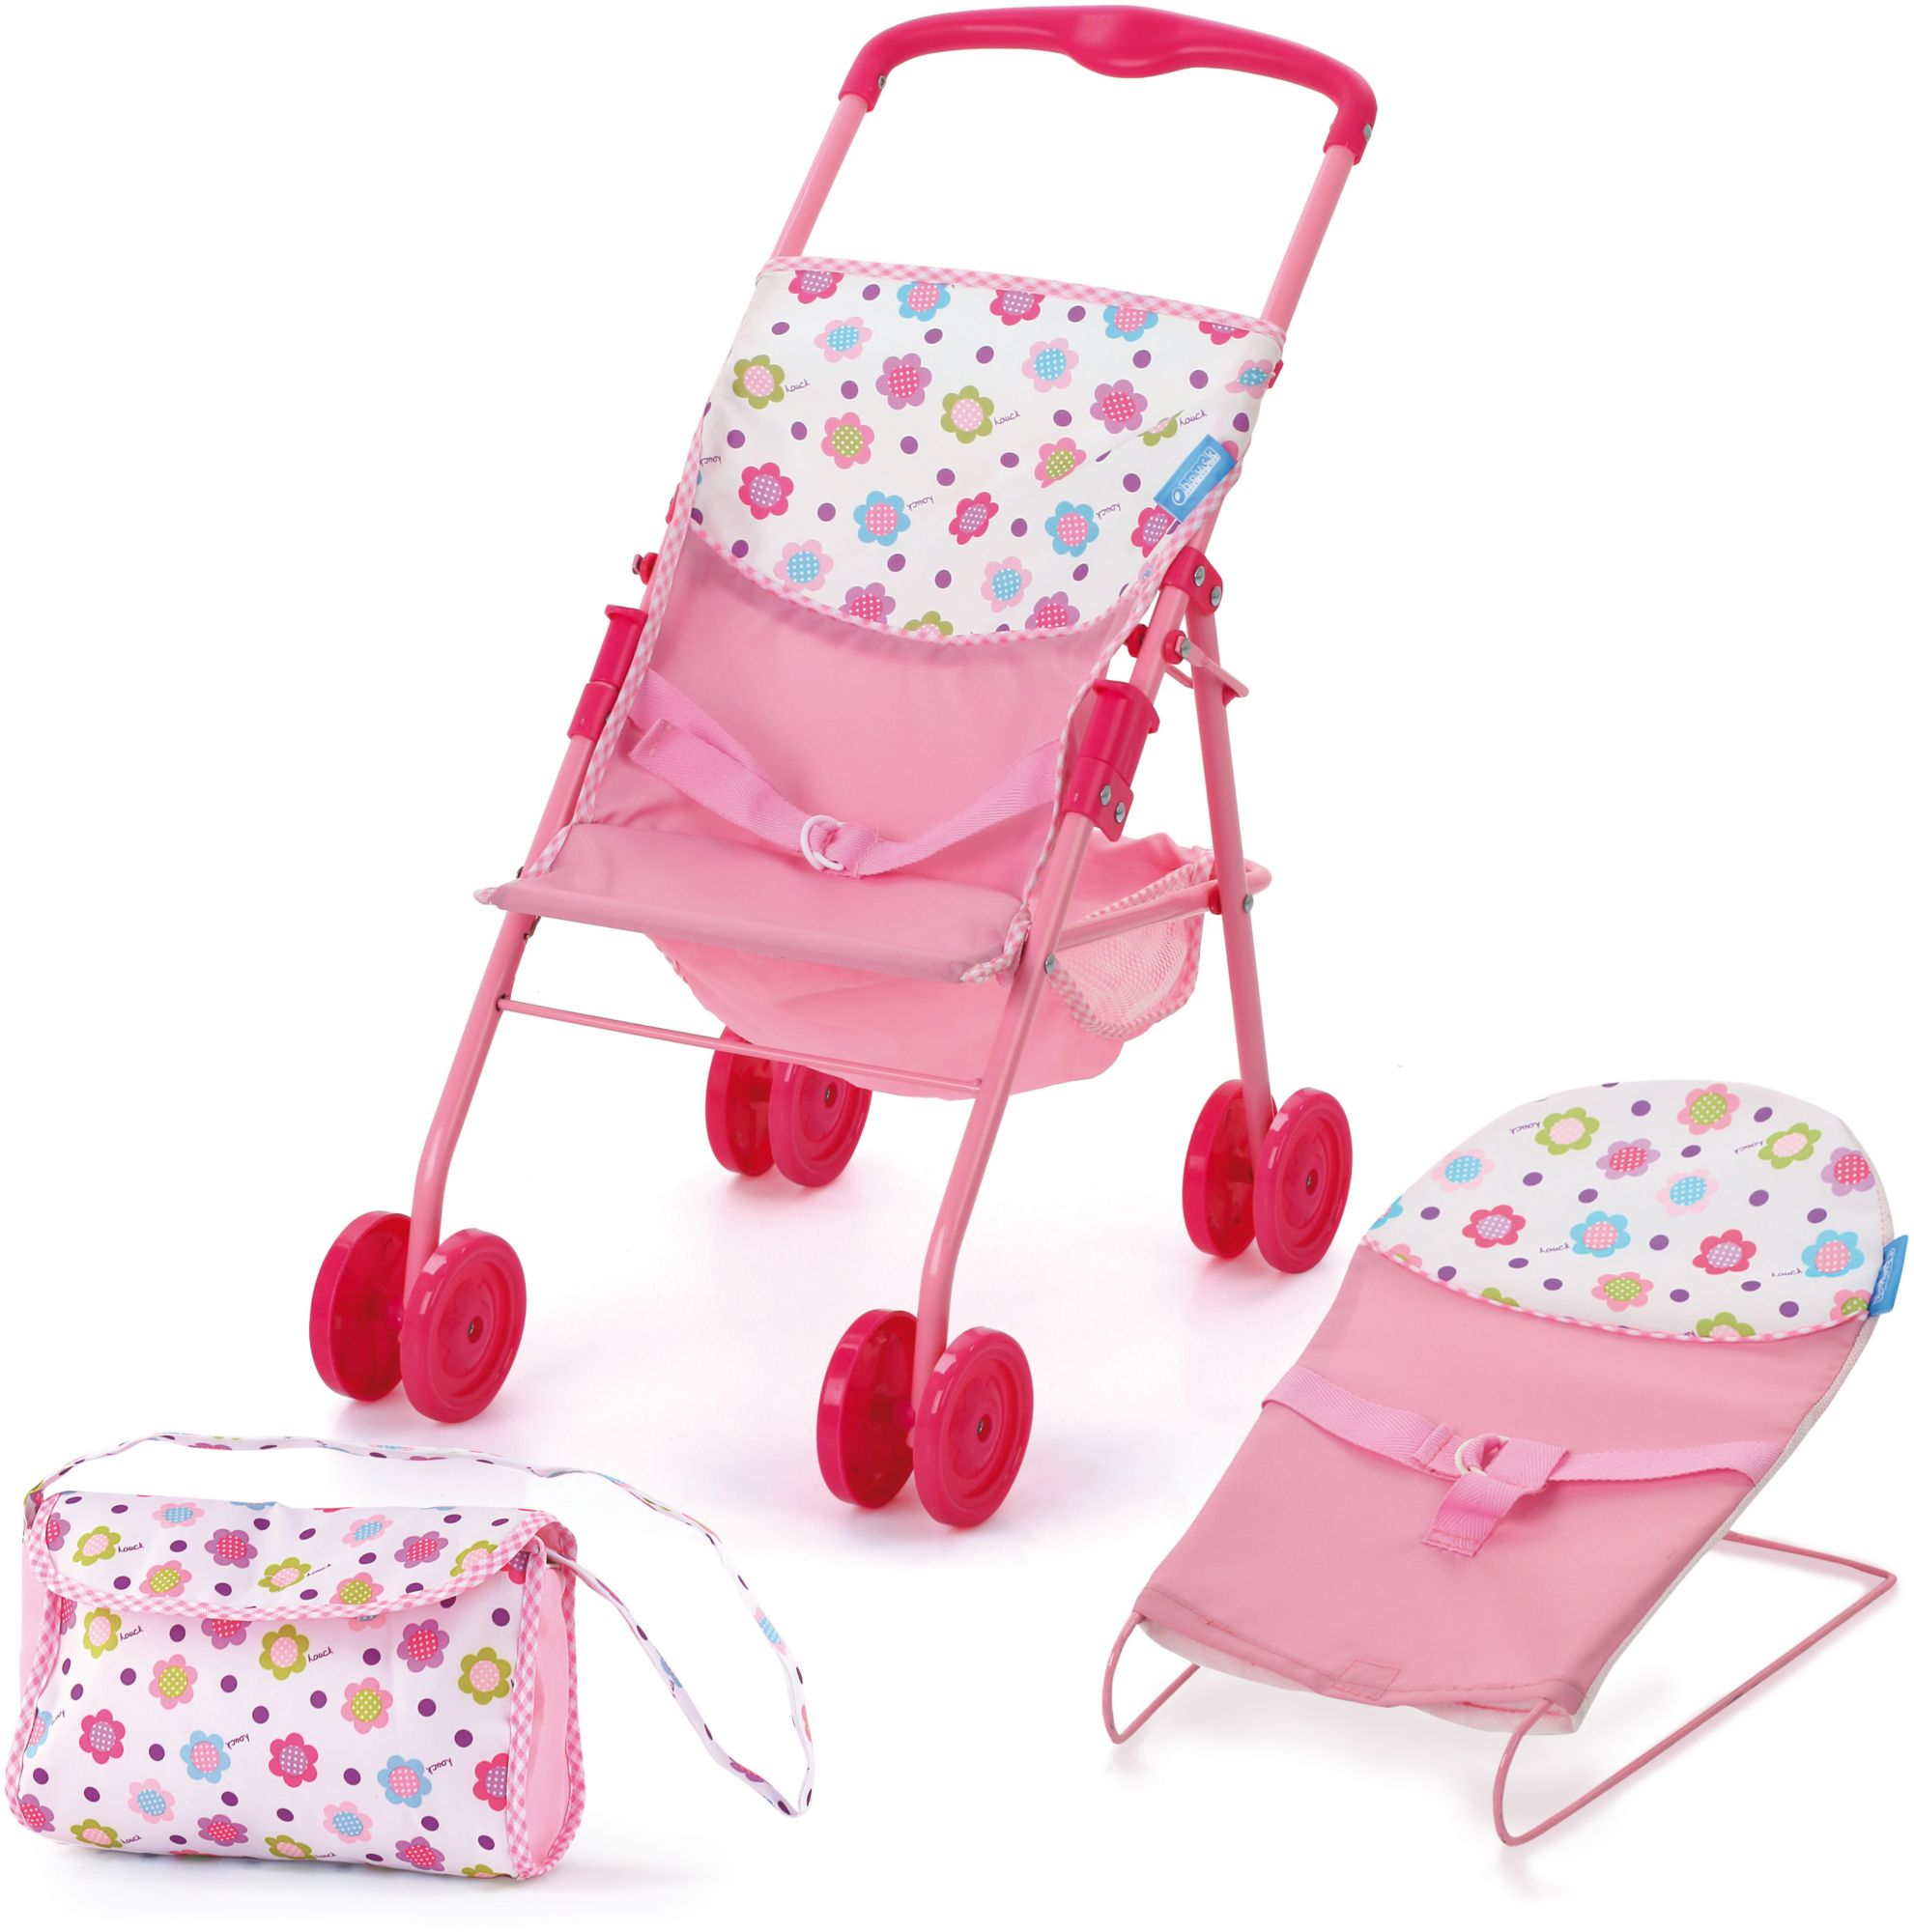 HAUCK TOYS FOR KIDS hauck TOYS FOR KIDS Puppen-Set 3tlg., »Travel and Care Set, Sping Pink«